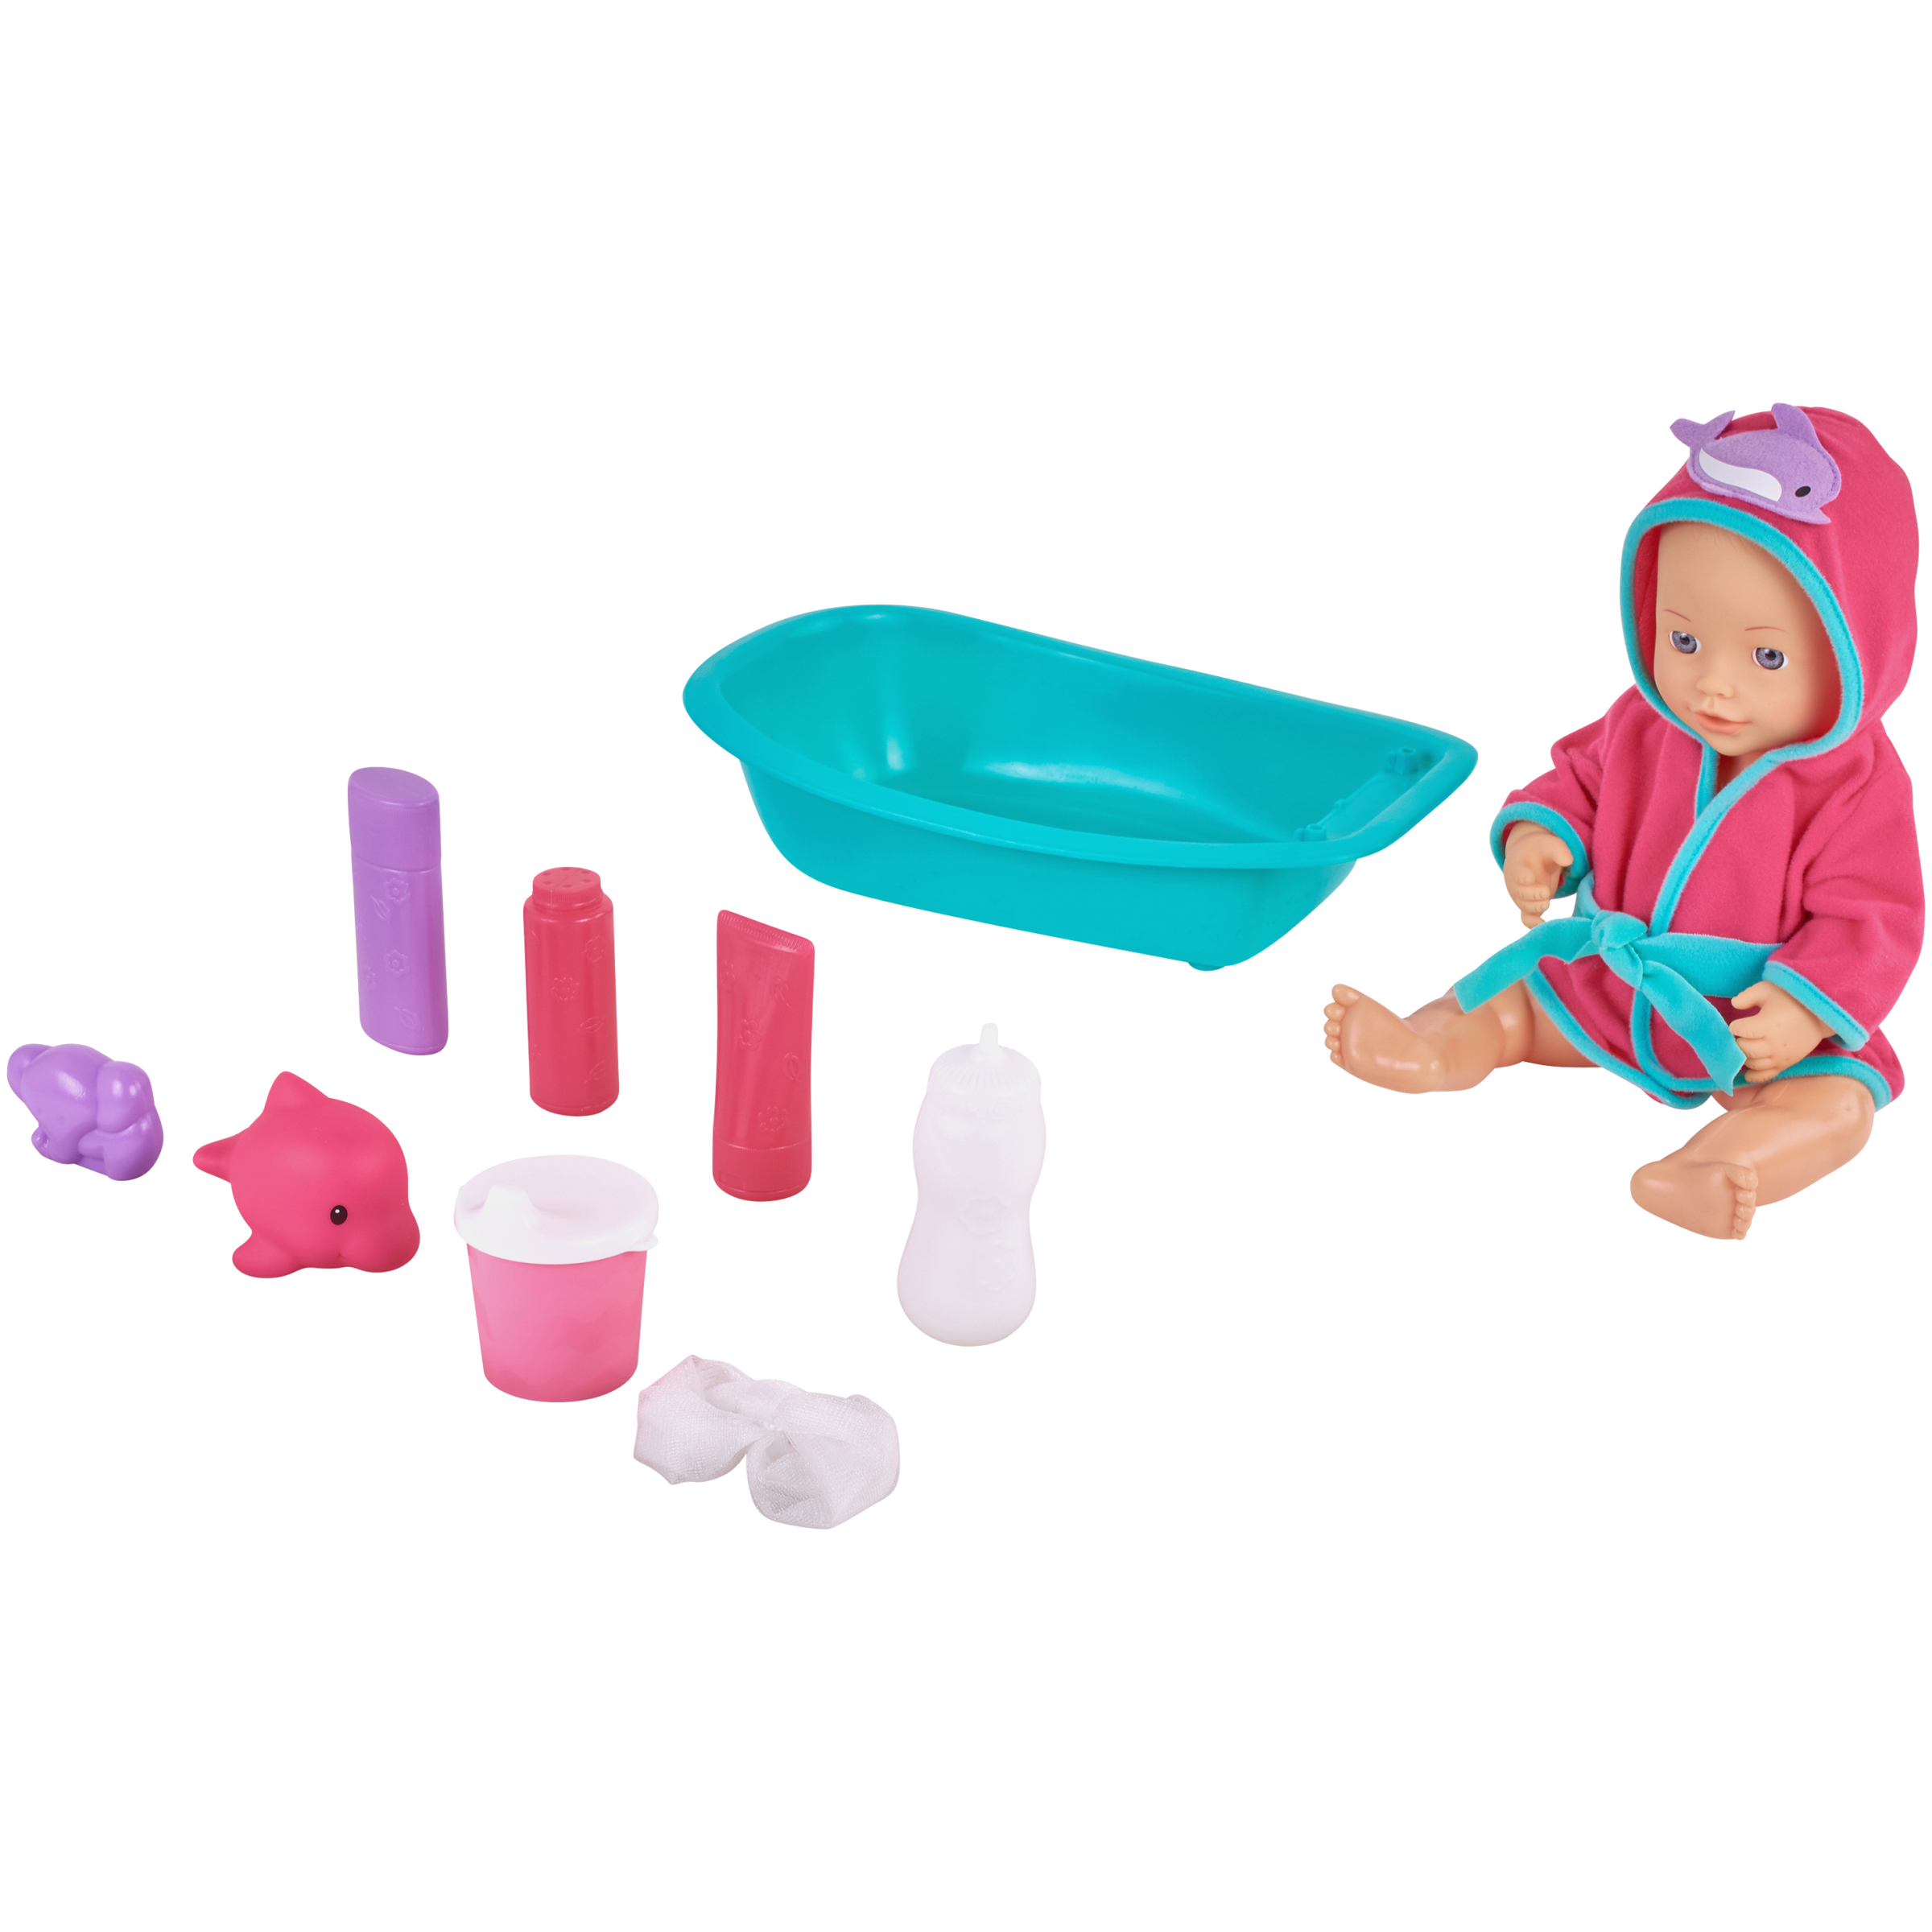 Kid connection 10-piece bathing baby doll set, purple, teal & pink